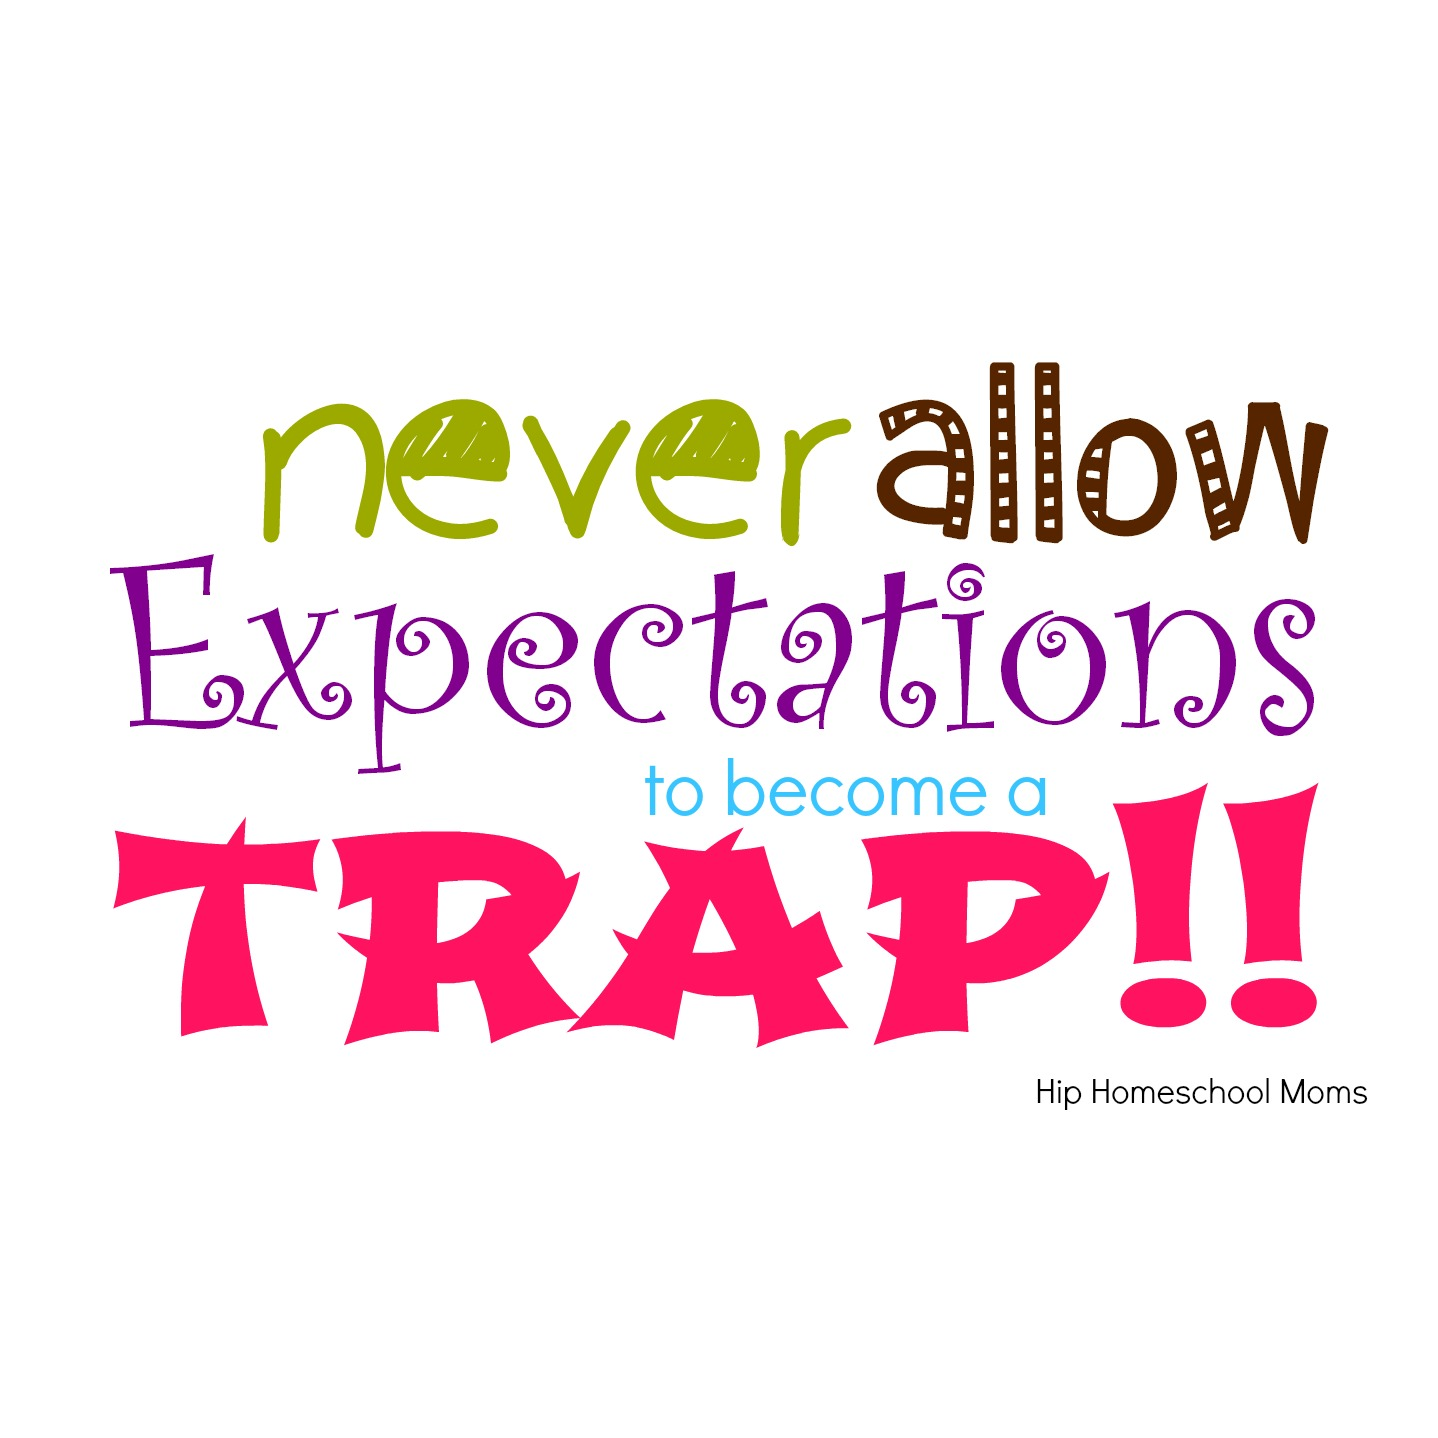 Never allow expectations to become a trap